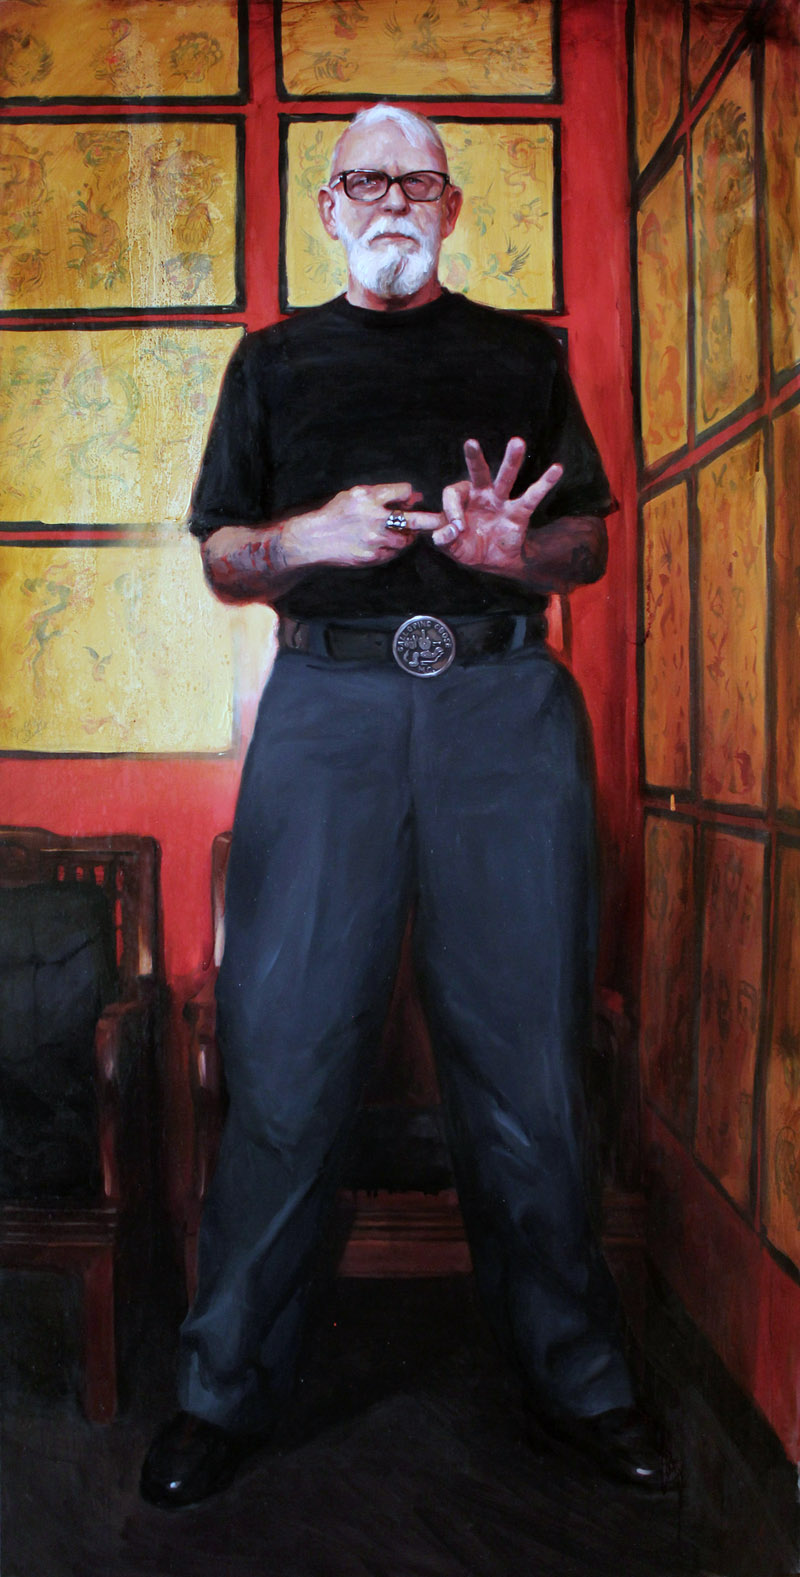 "'Portrait of the Artist, Bob Roberts', oil on canvas, 72"" x 36"", 2008"